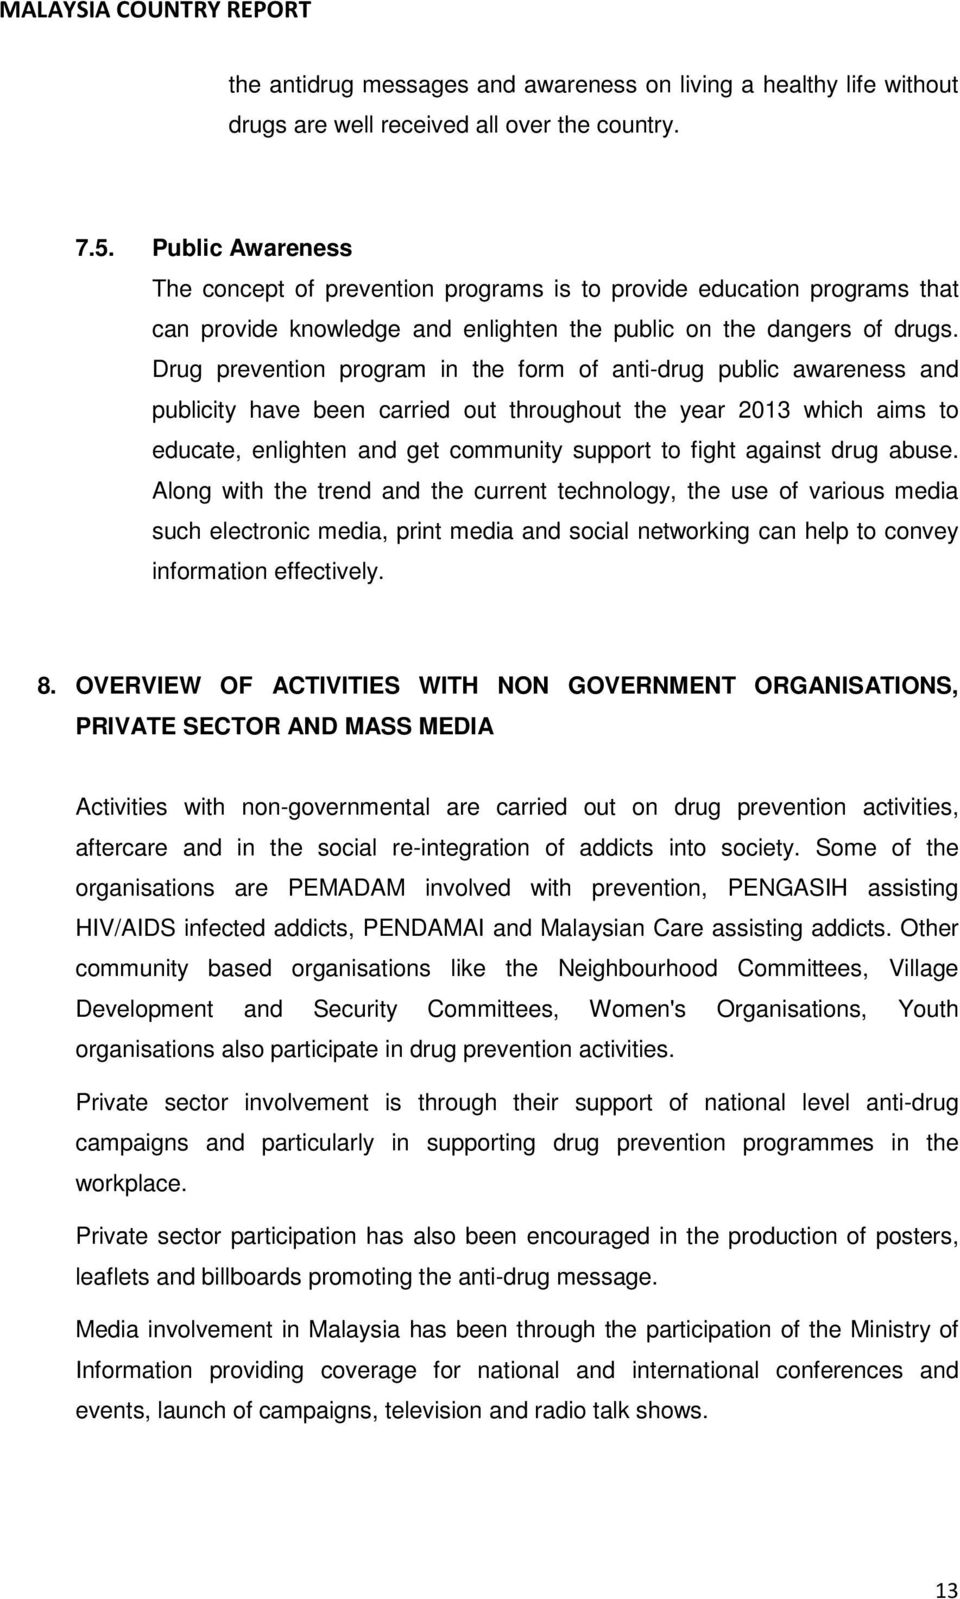 Drug prevention program in the form of anti-drug public awareness and publicity have been carried out throughout the year 2013 which aims to educate, enlighten and get community support to fight